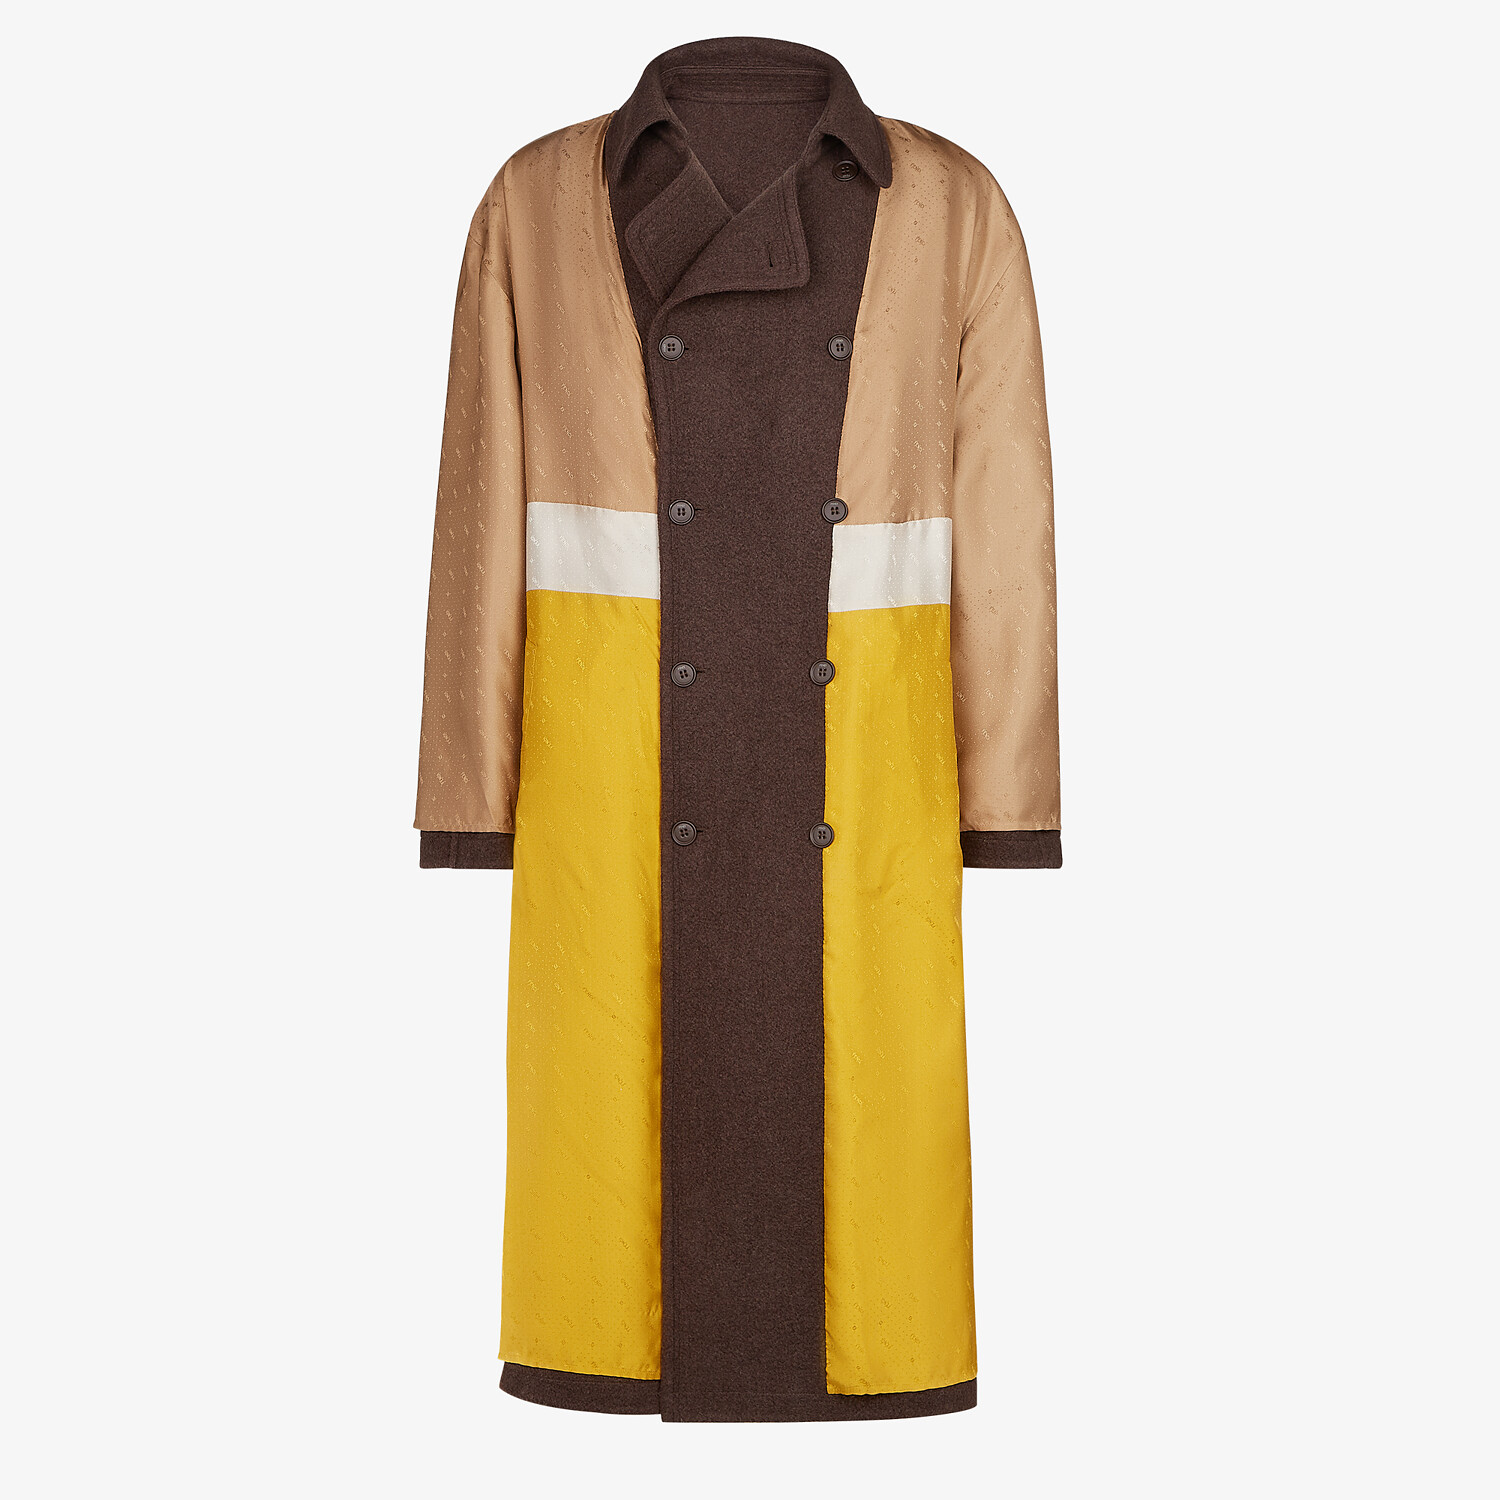 FENDI TRENCH COAT - Brown cashmere trench coat - view 4 detail